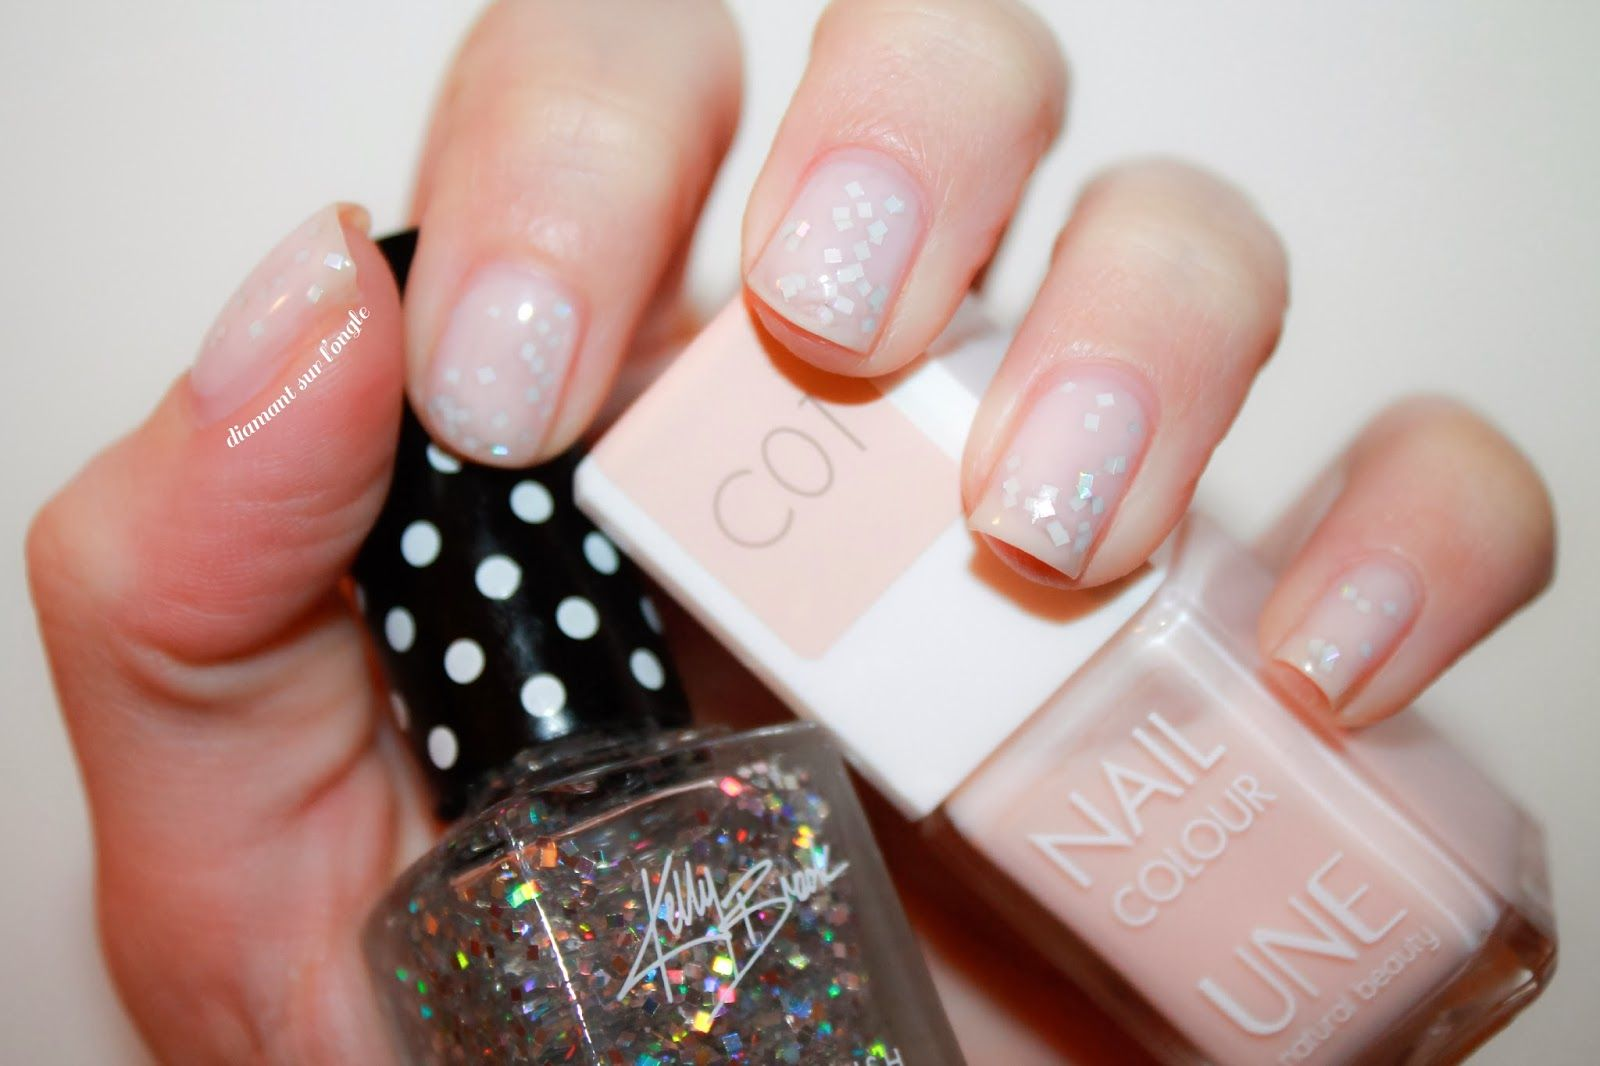 · Jelly Sandwich Nailstorming by diamant sur l\'ongle | My Nail Arts ...